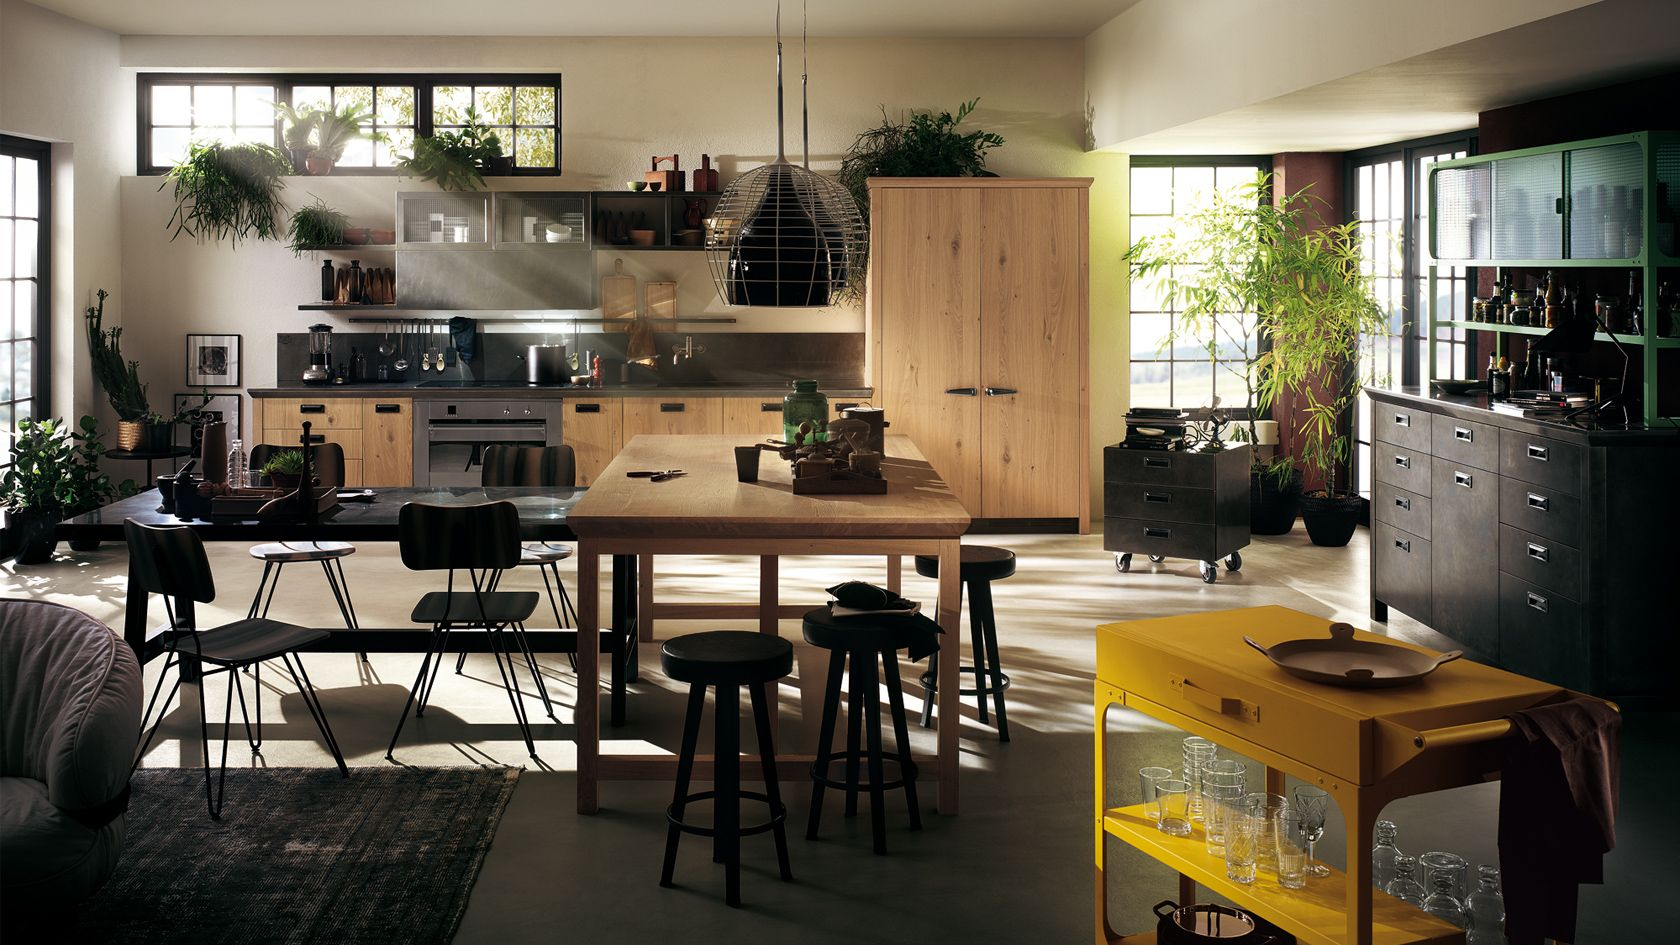 Ultra Modern Scavolini Kitchens For Kitchen Redesign Ideas: Rolling Cart  With Kitchen Table And Barstools Also China Cabinet With Armoire Plus  Scavolini ...